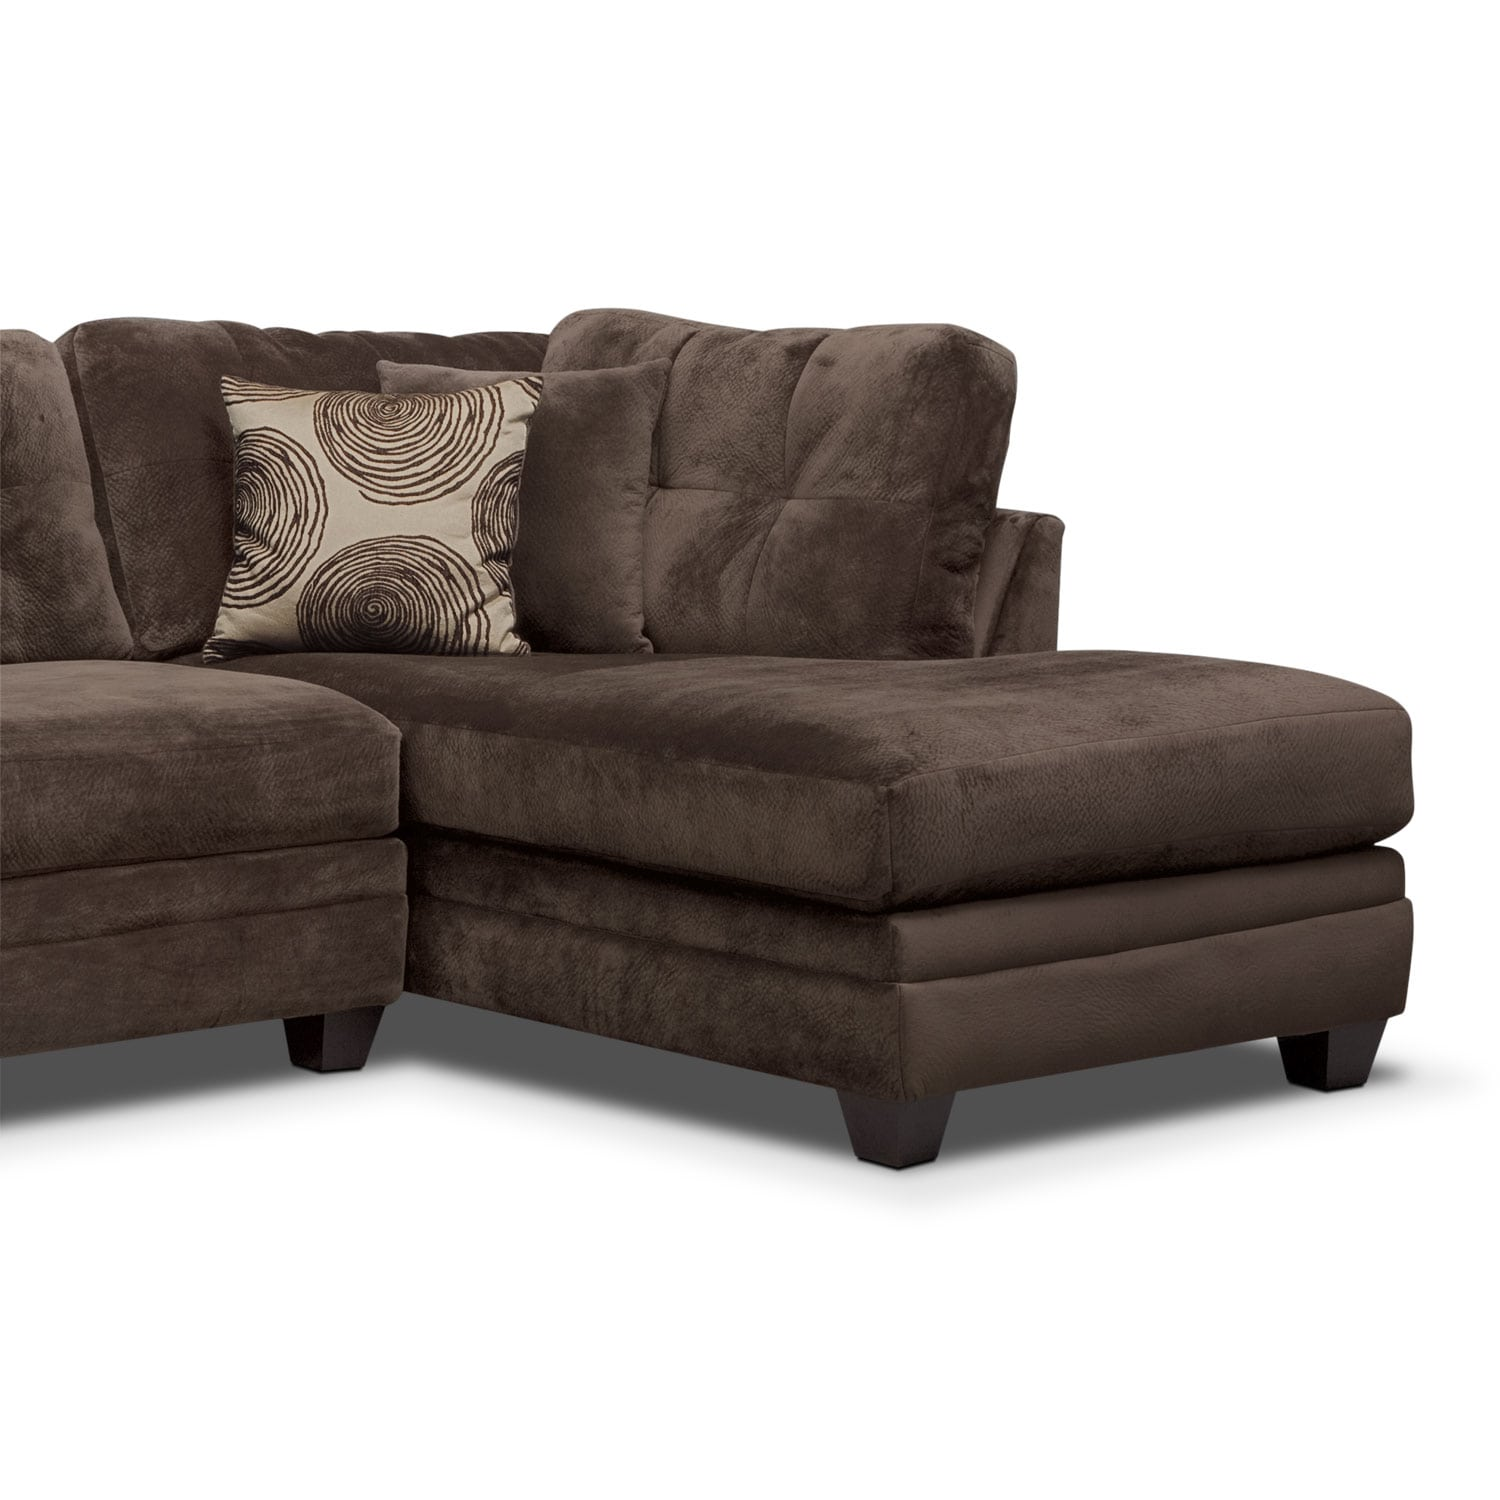 back of sofa facing fireplace grey bed sectional cordelle 2 piece with right chaise